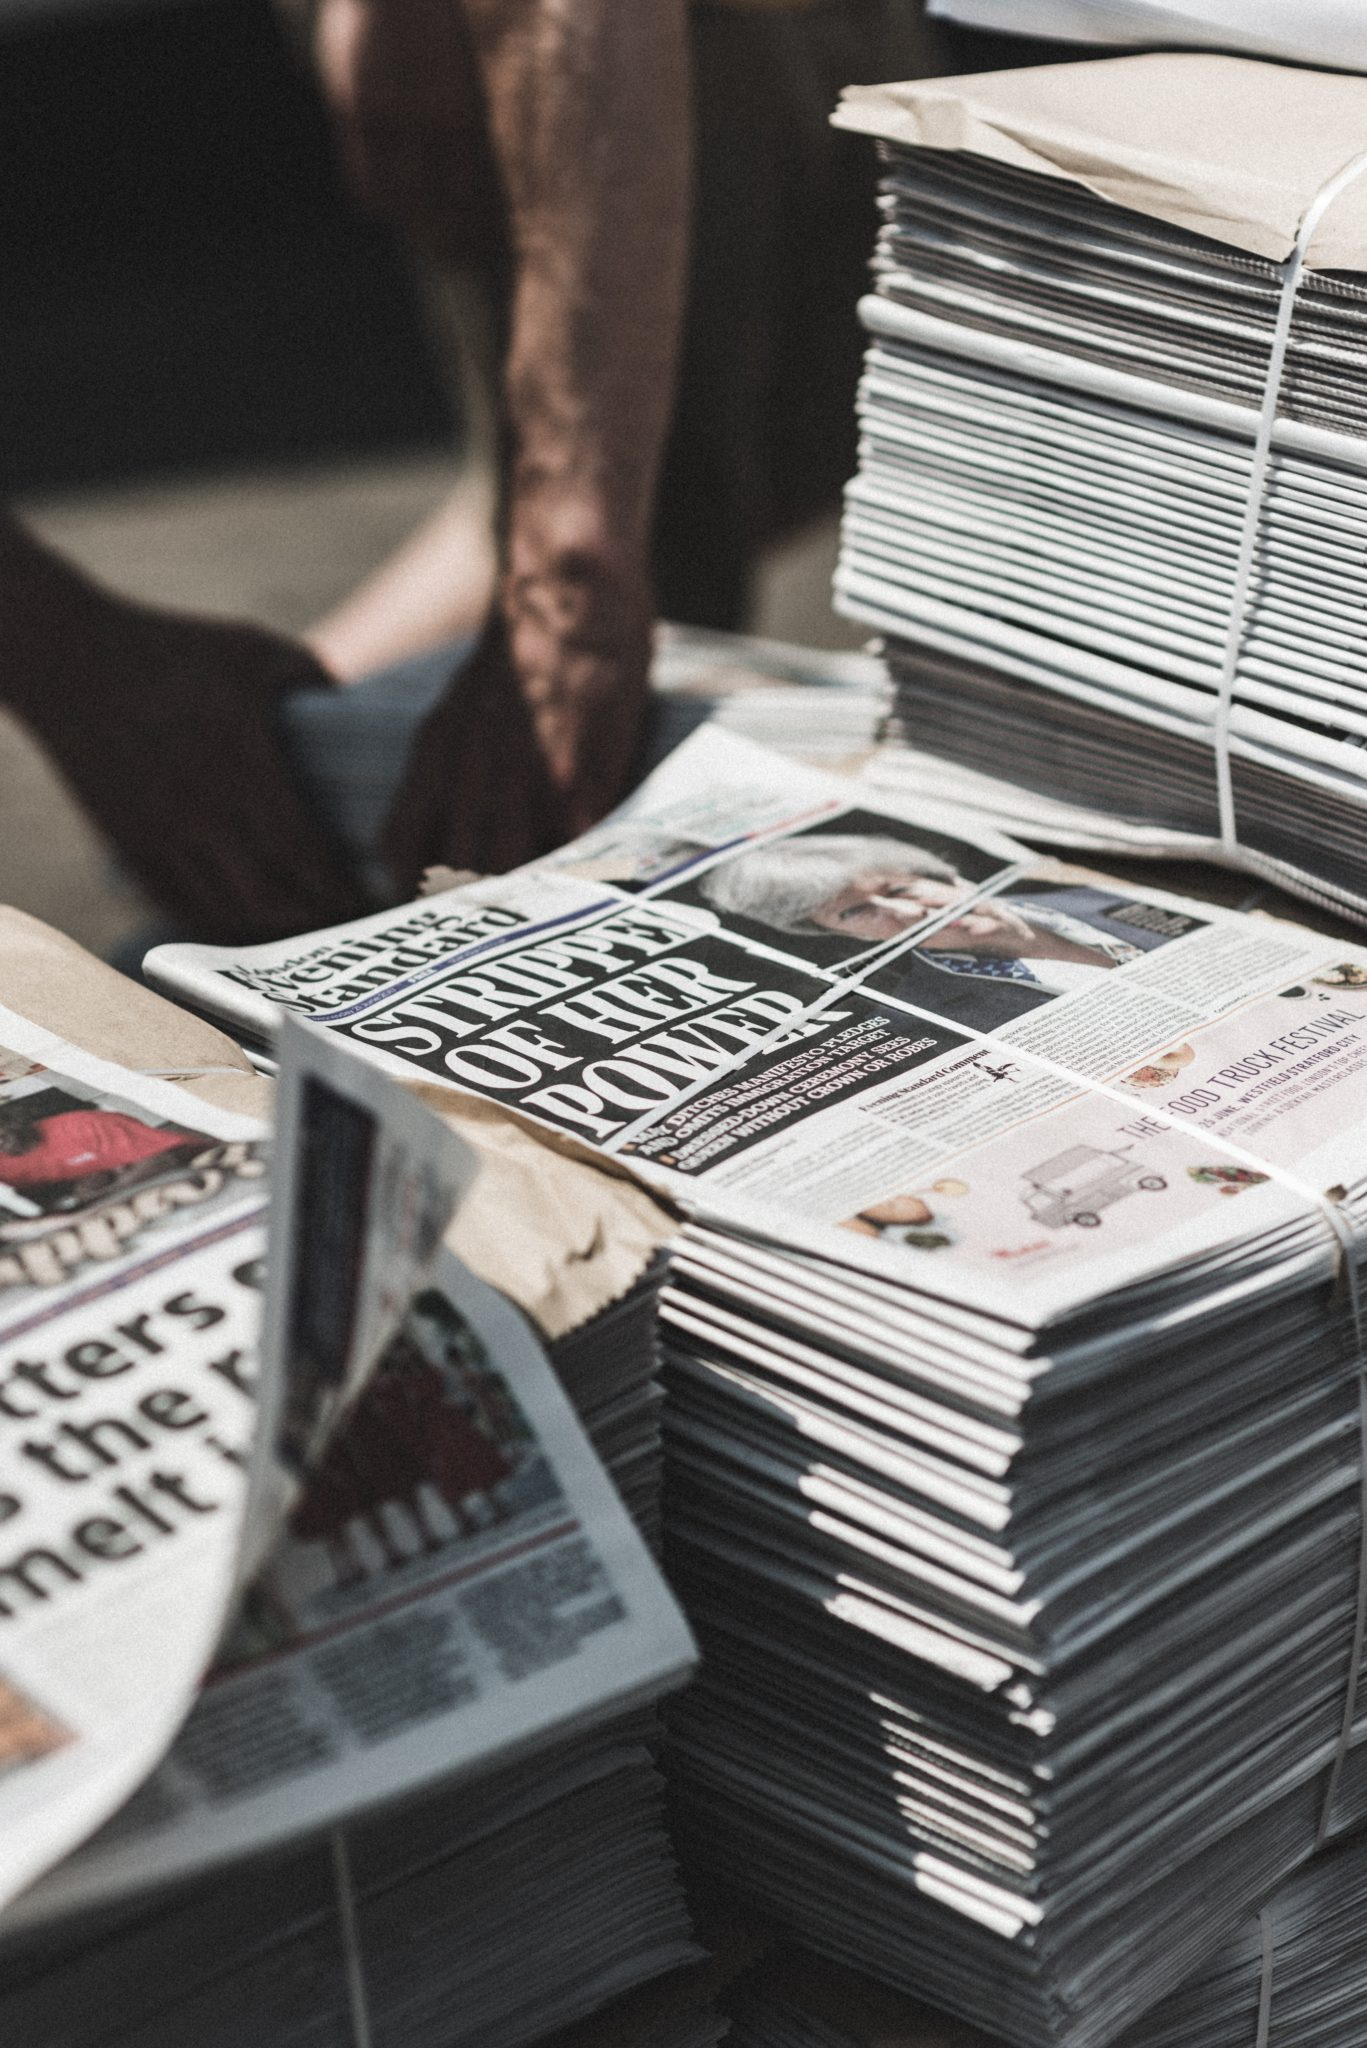 Shallow focus photography of piles of newspapers, photography by